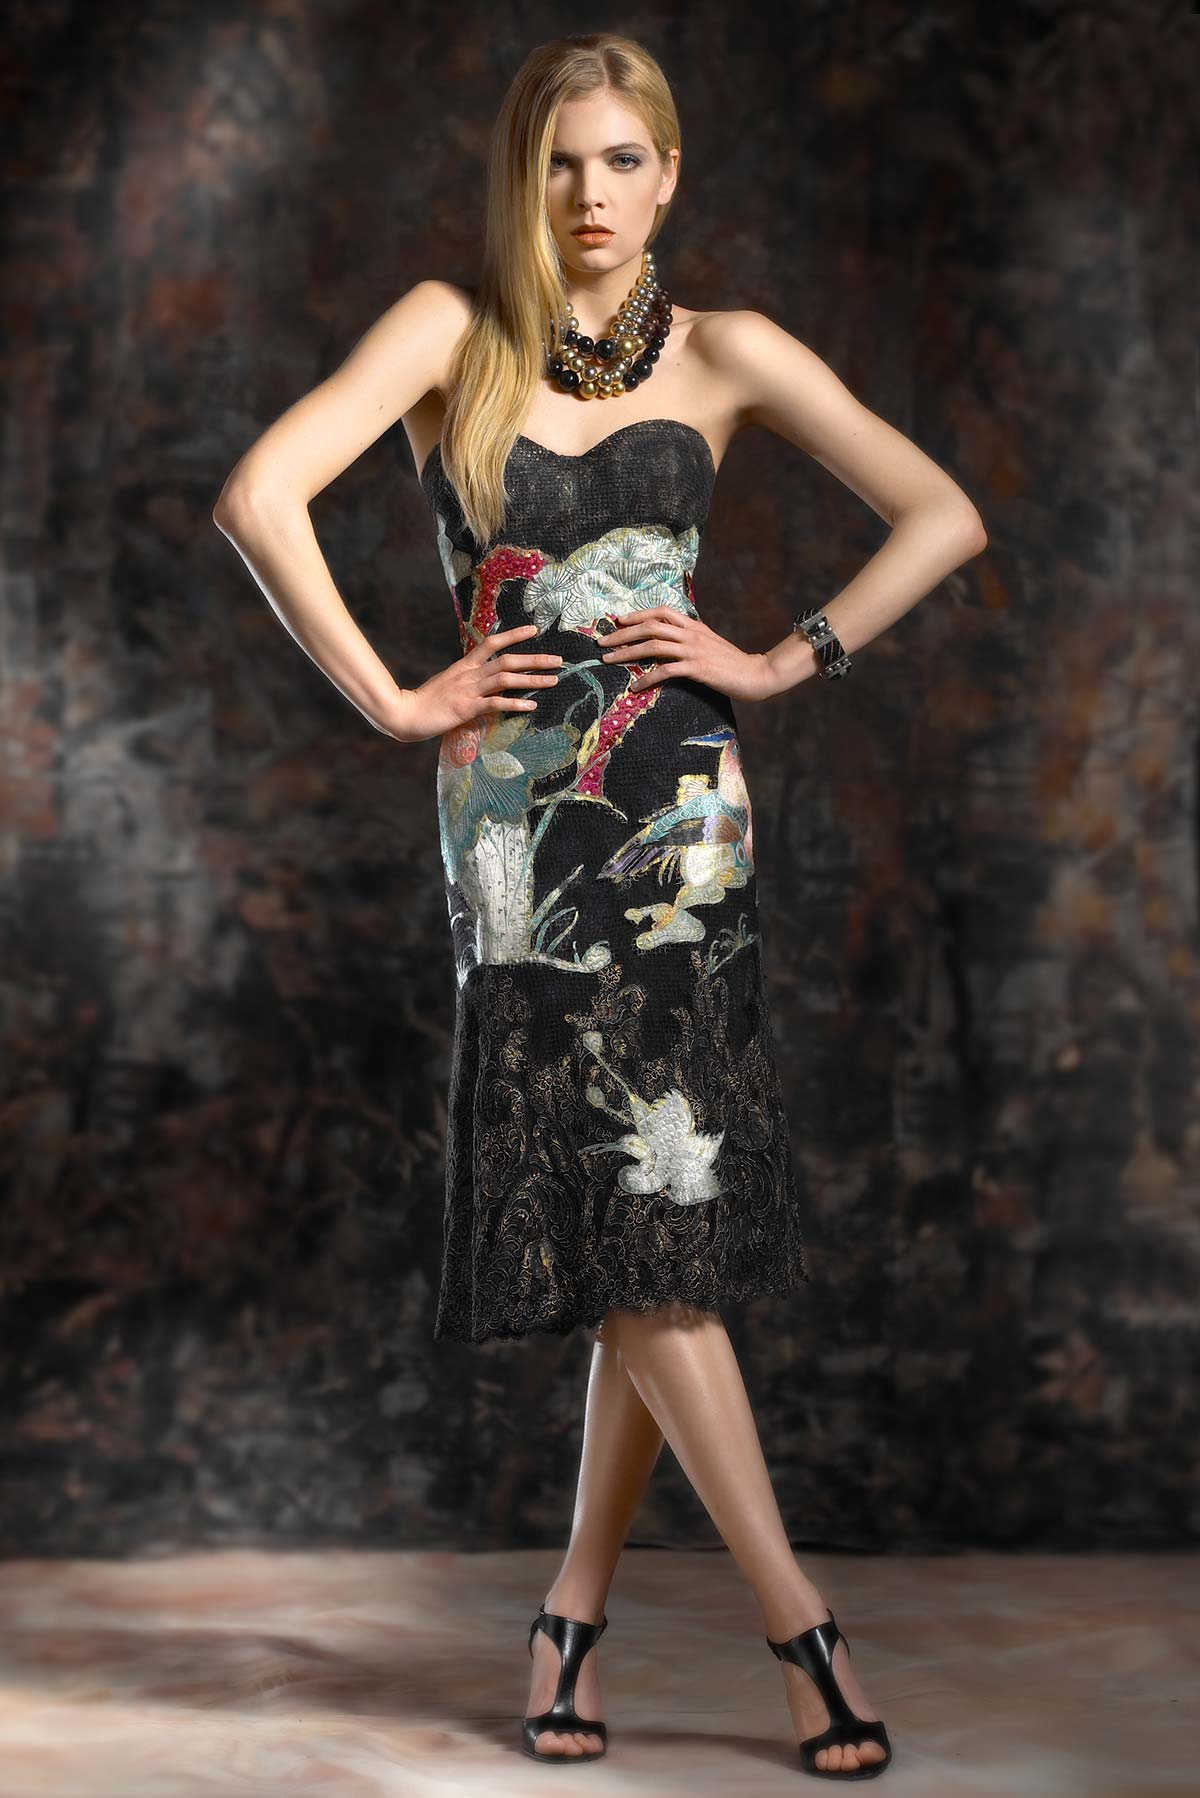 WILD PARADISE | Constance McCardle Fashion Design | Photography: Rick Luettke